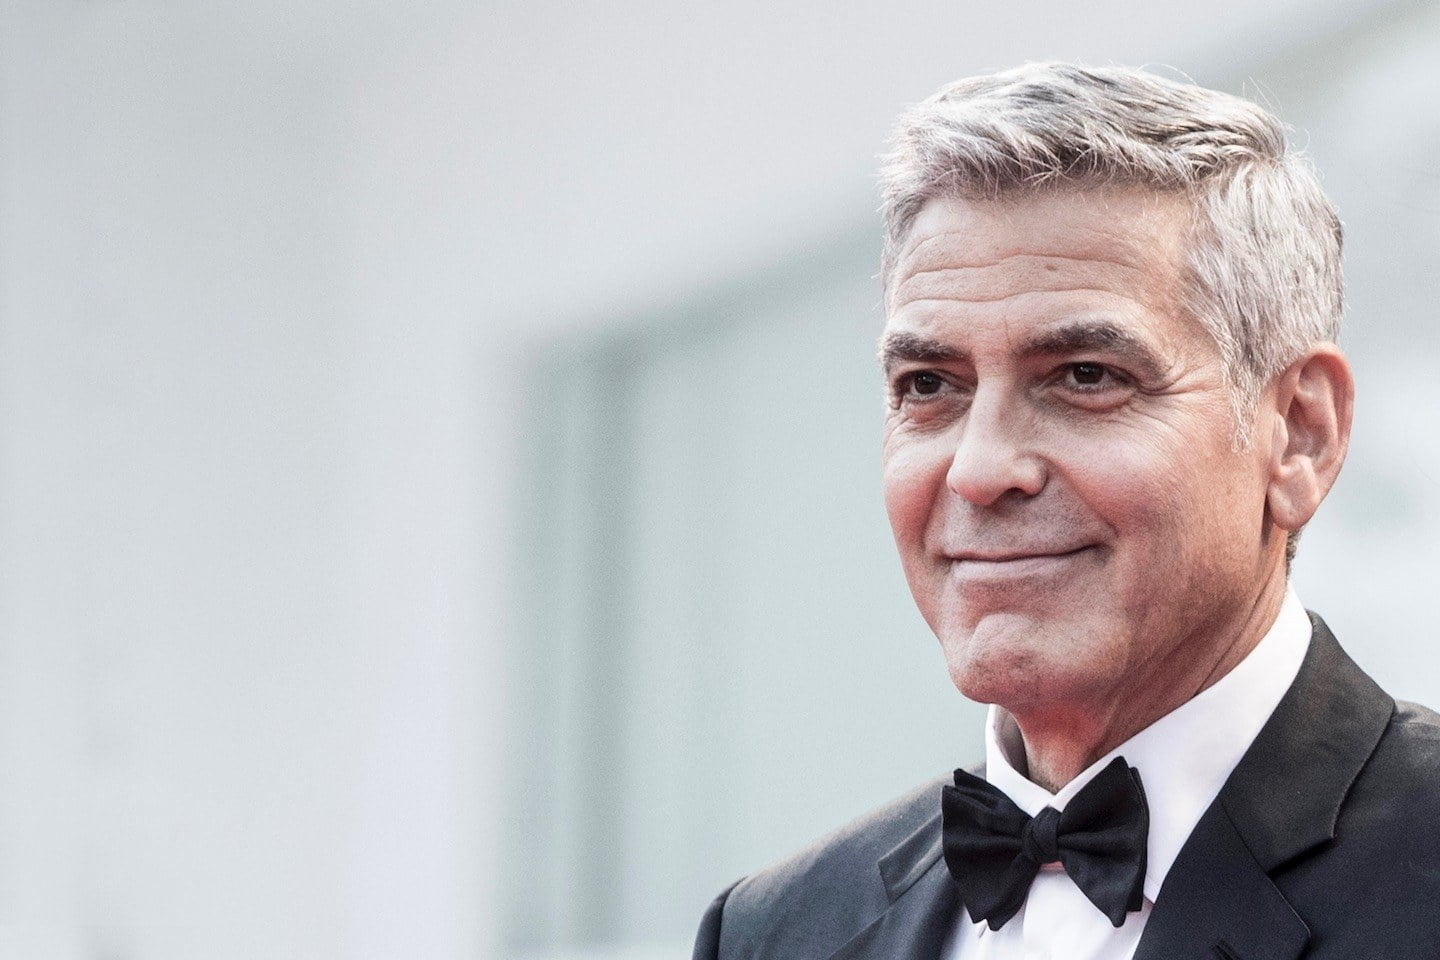 George Clooney's Height, Weight And Body Measurements